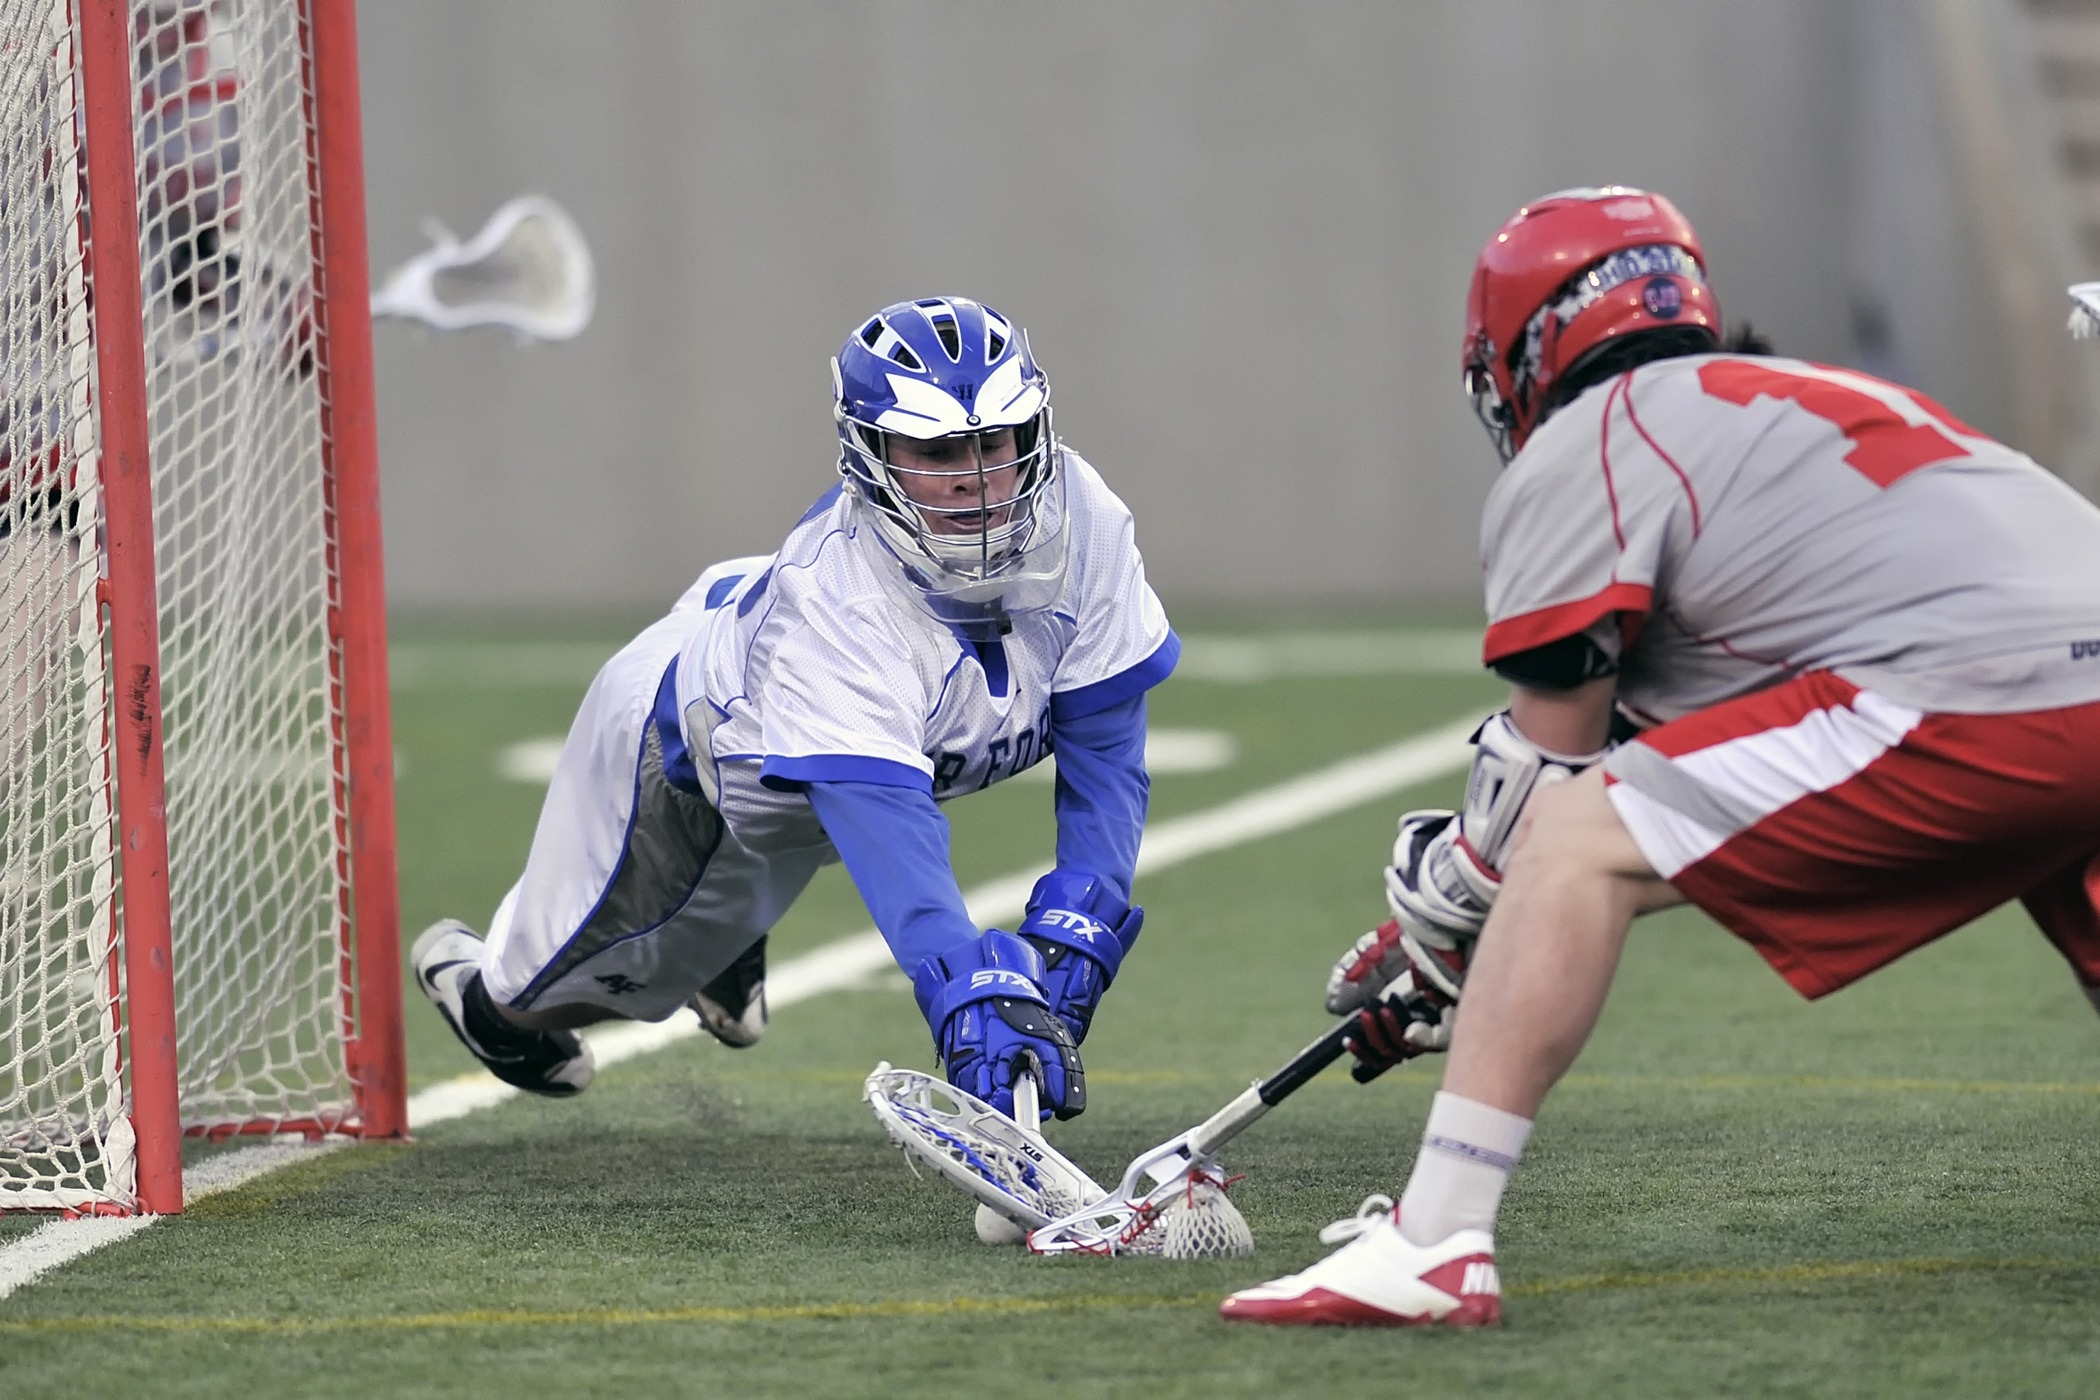 lacrosse-air-force-ohio-state-game-67870.jpg